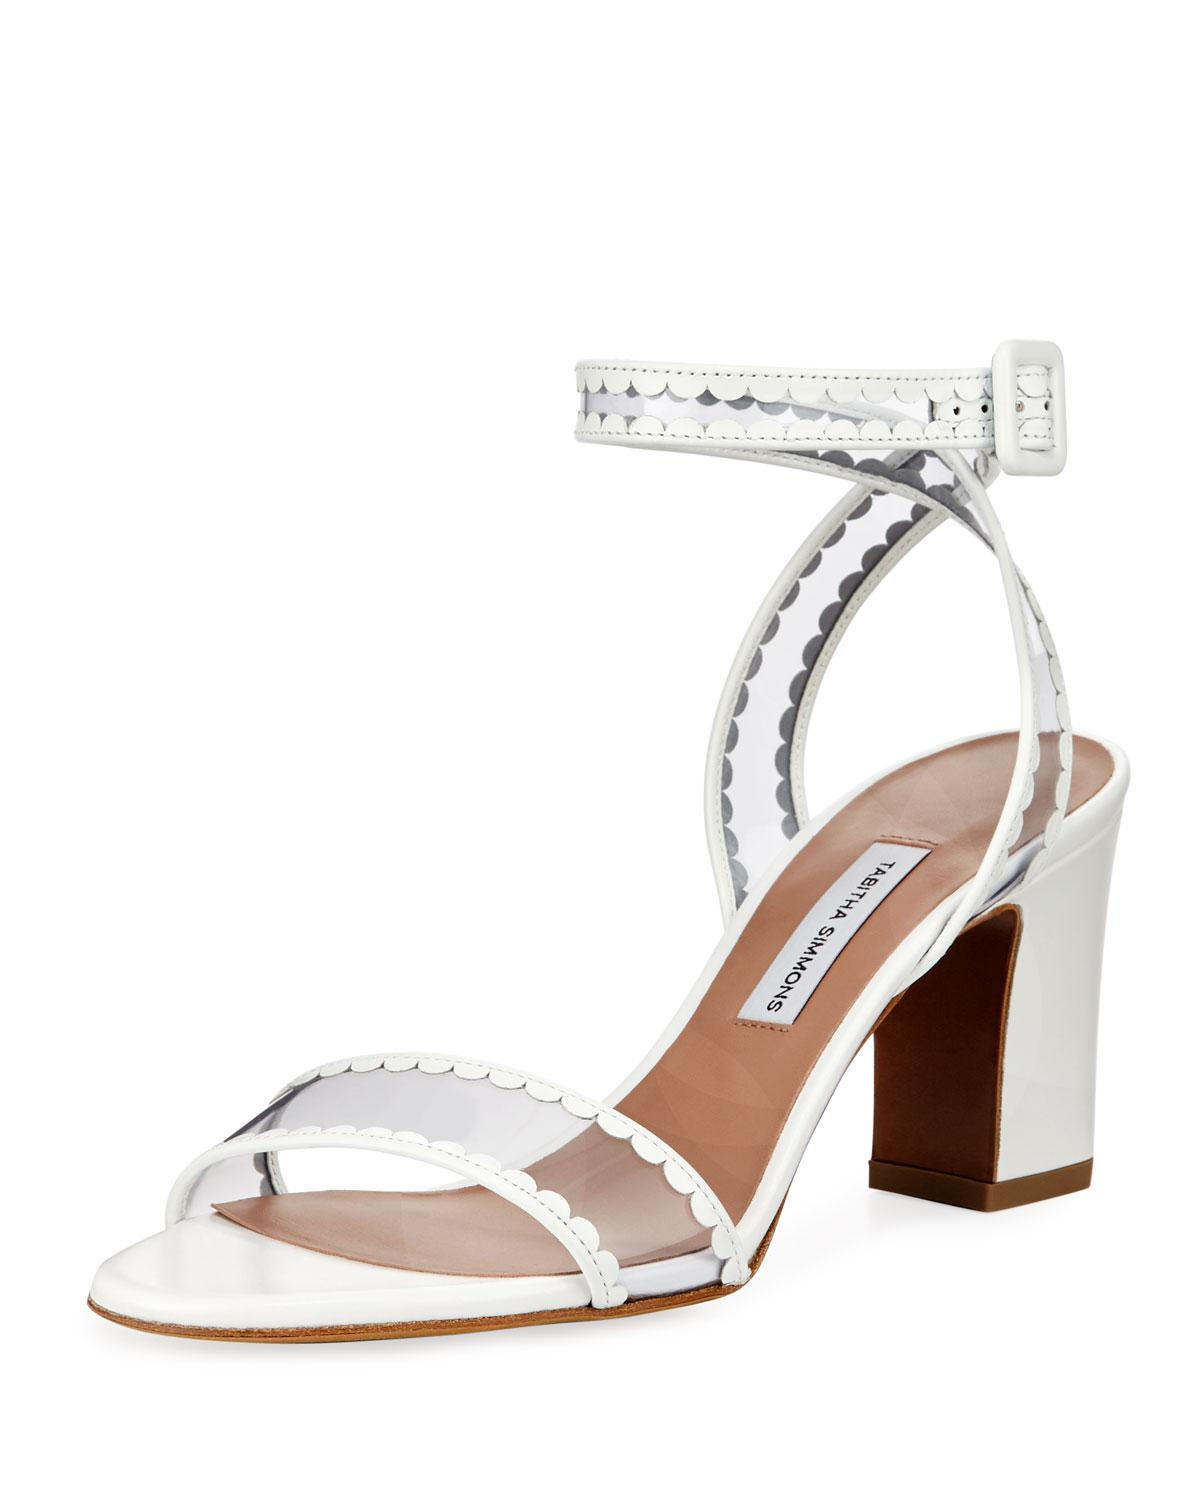 cheap sale free shipping Tabitha Simmons Leticia Frill leather sandals big discount 01nd6